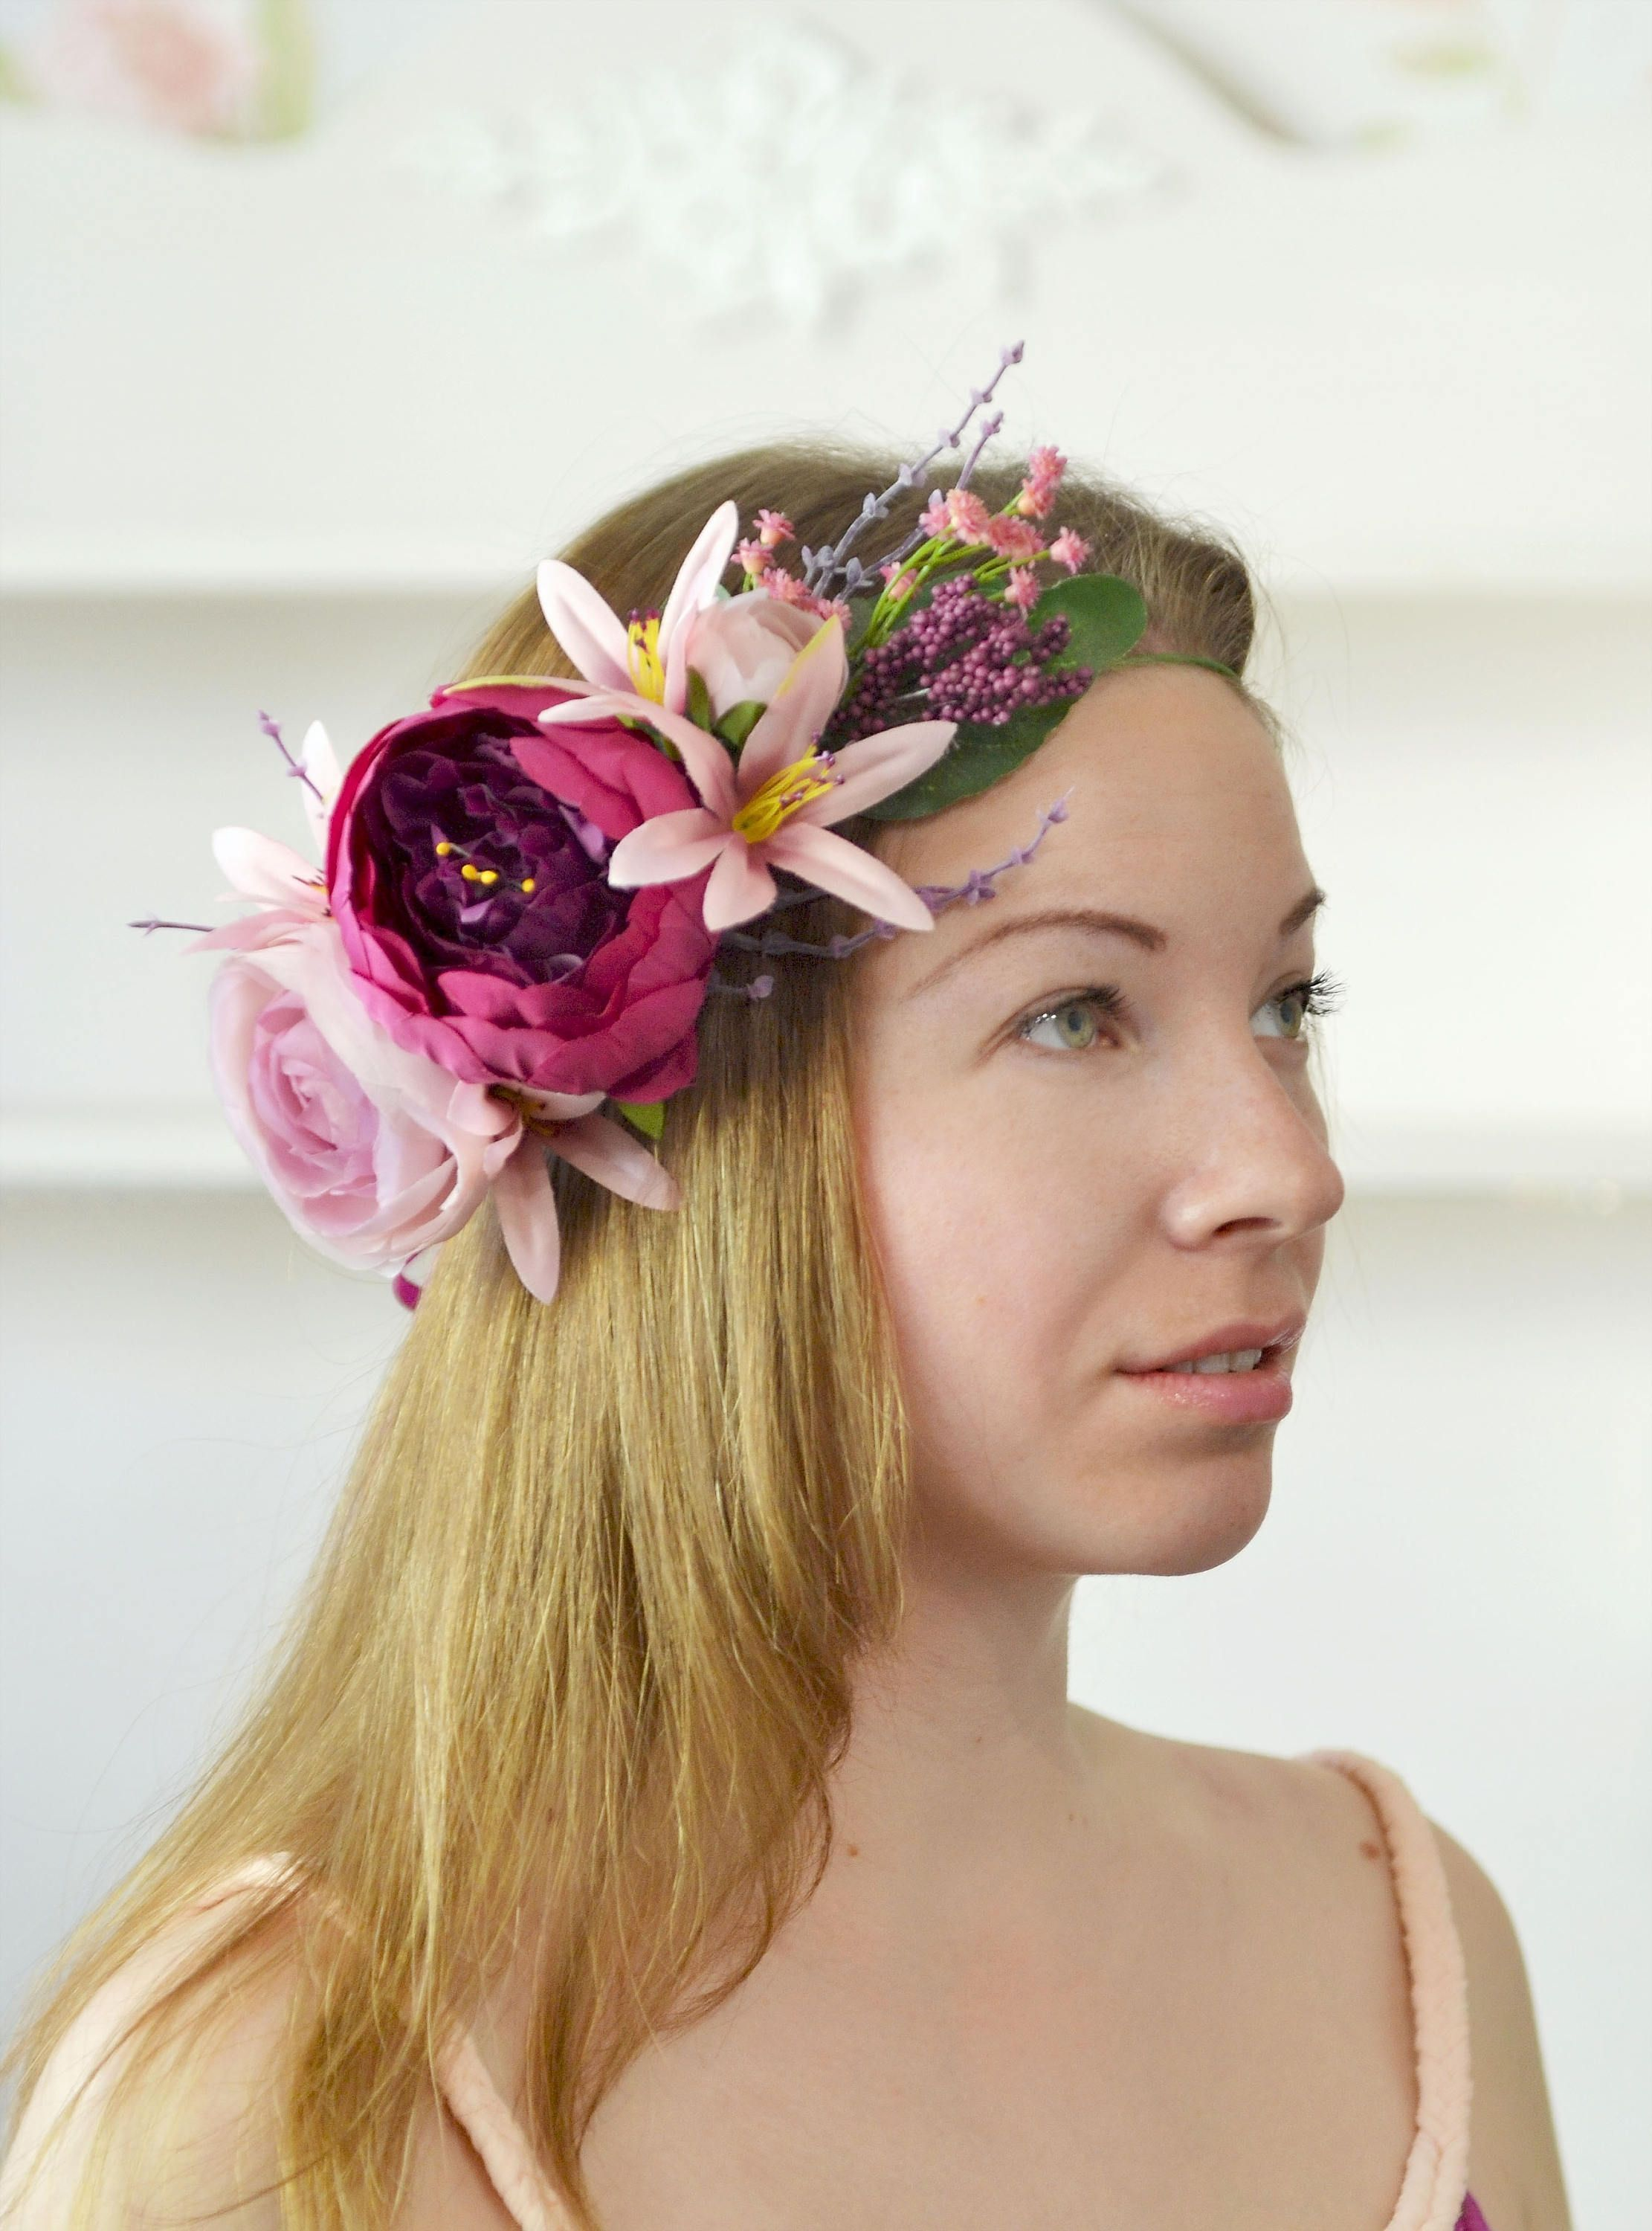 Bridal crown purple peony crown lilies head wreath wedding summer bridal crown purple peony crown lilies head wreath wedding summer flowers halo bride boho wedding crown izmirmasajfo Choice Image